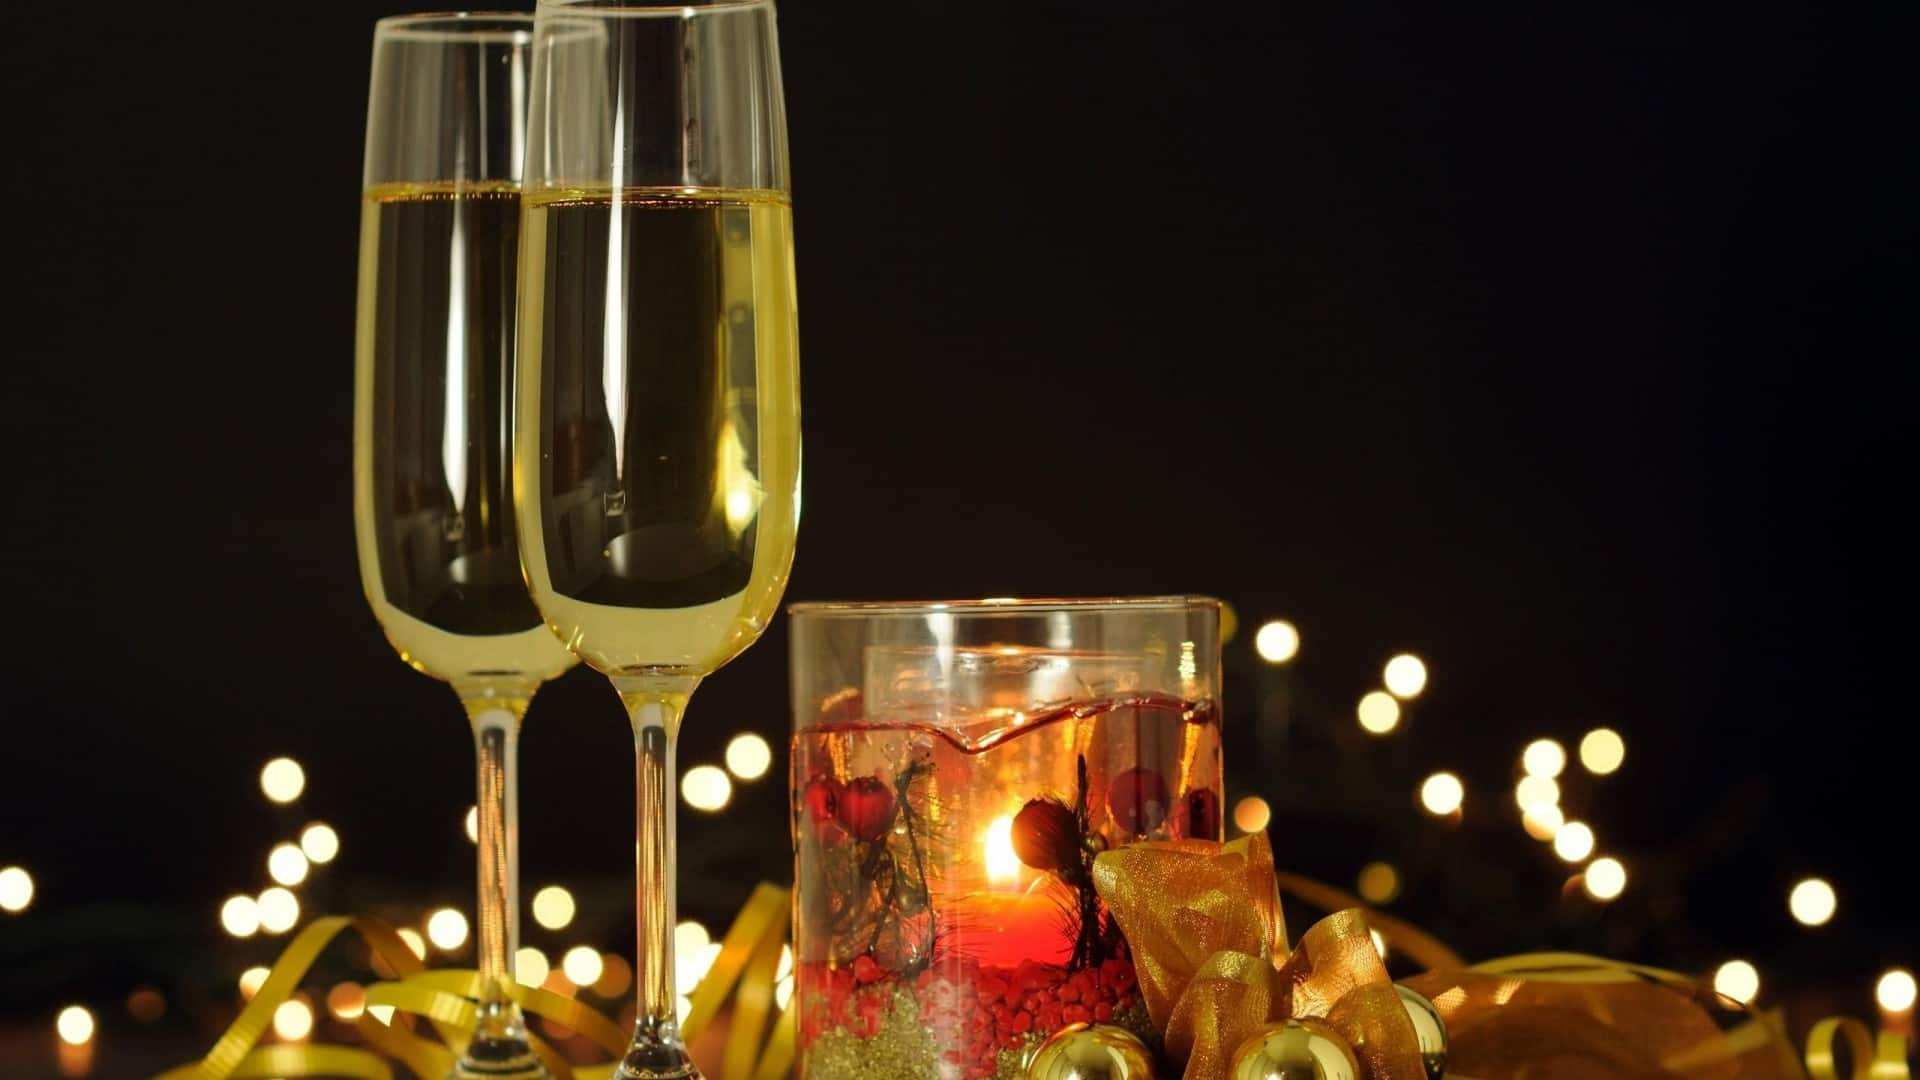 christmas_new_year_balloons_glasses_champagne_candle_35719_1920x1080-e1379020252225